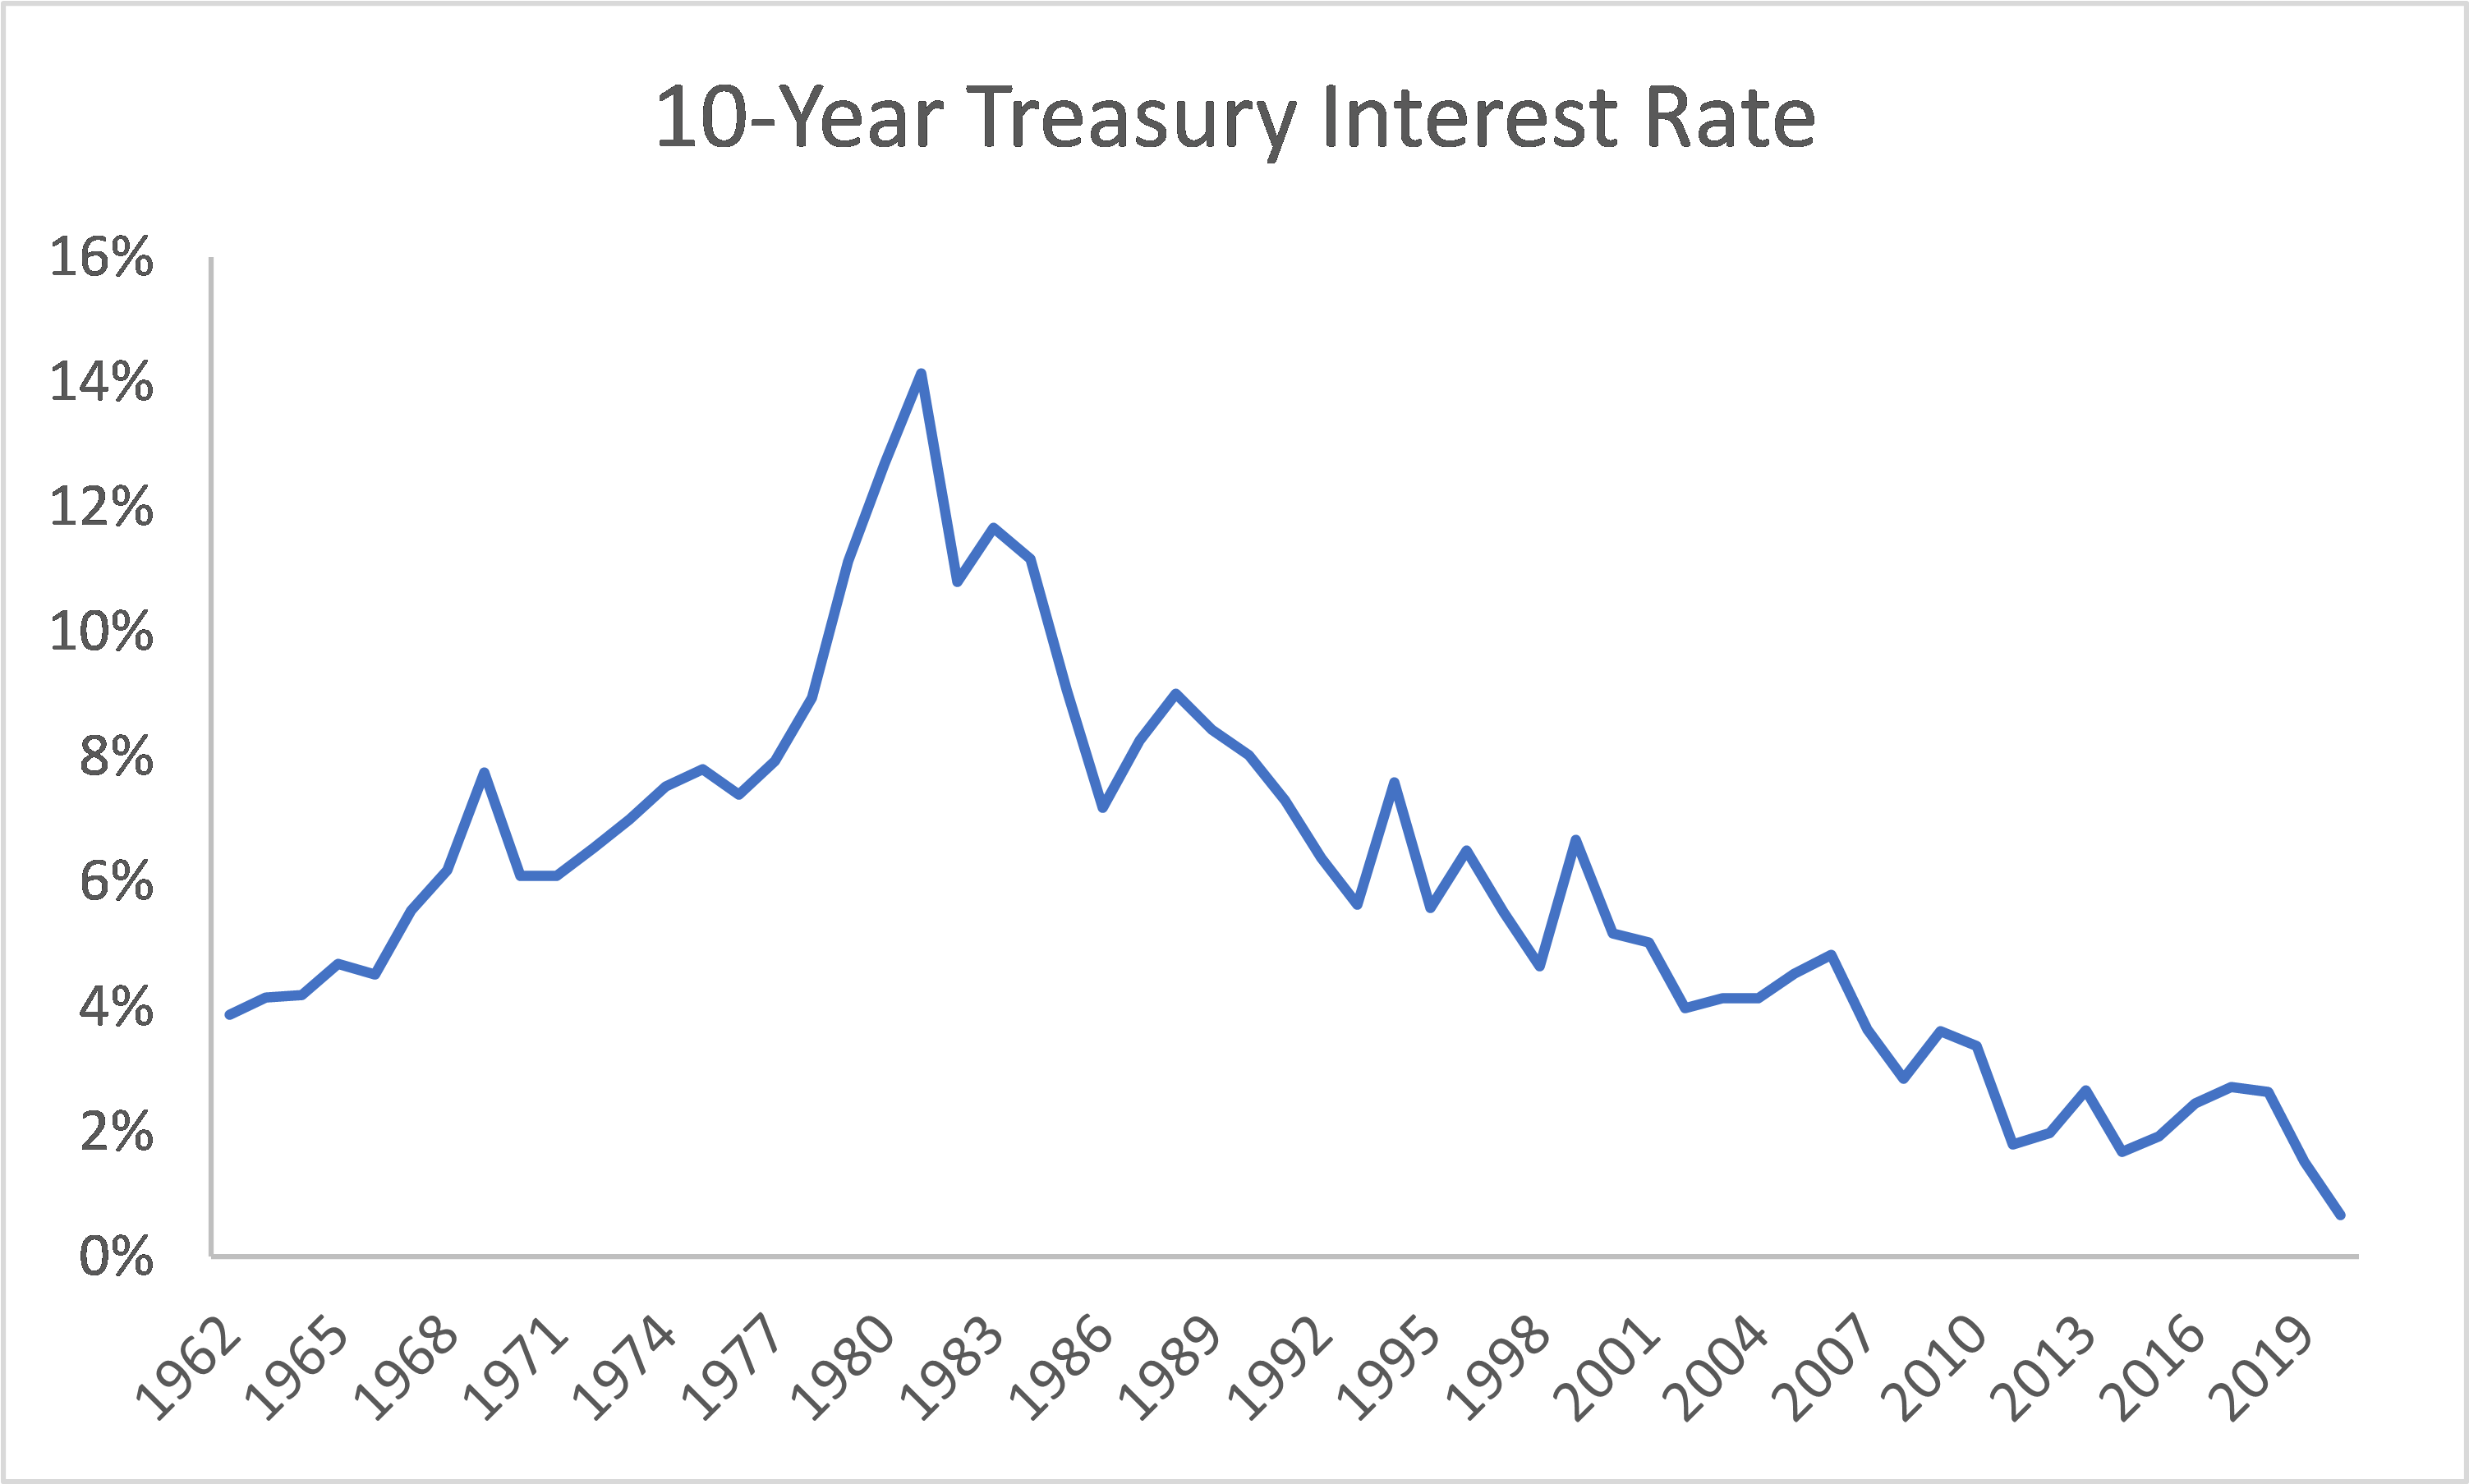 10-Year Treasury Rate from 1962 to 2019 with single major peak in 1981